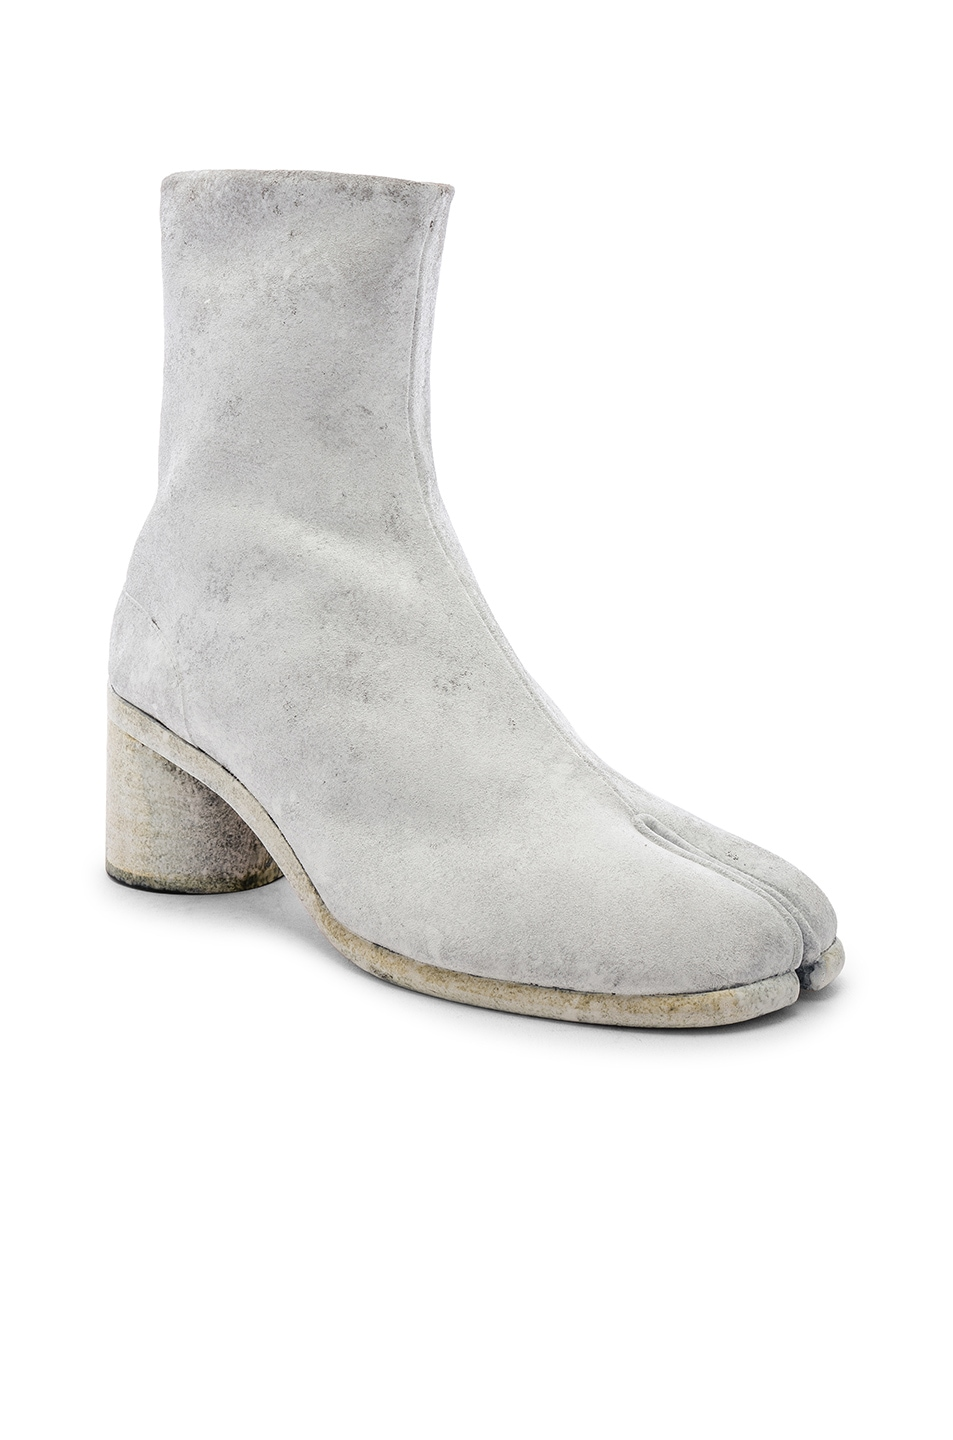 Image 1 of Maison Margiela Tabi Boot in Grey